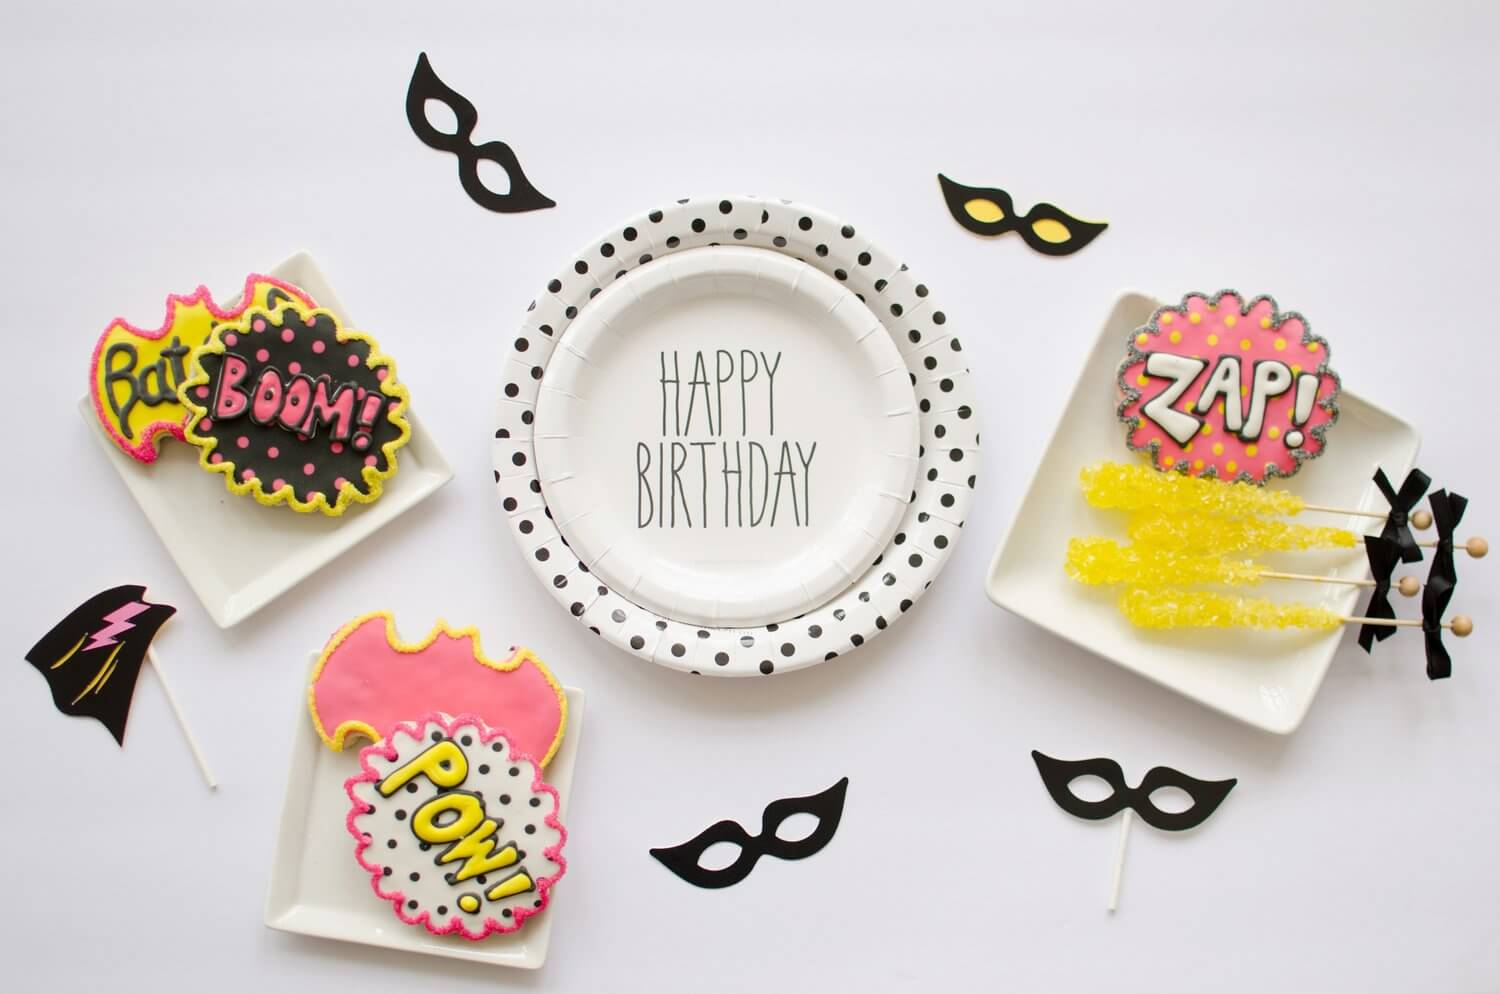 Can't forget about the cookies at a super hero birthday party - here the cookies are shaped like bats and word bubbles that read Boom!, Pow! and Zap! - see more kids party ideas on Mint Event Design www.minteventdesign.com